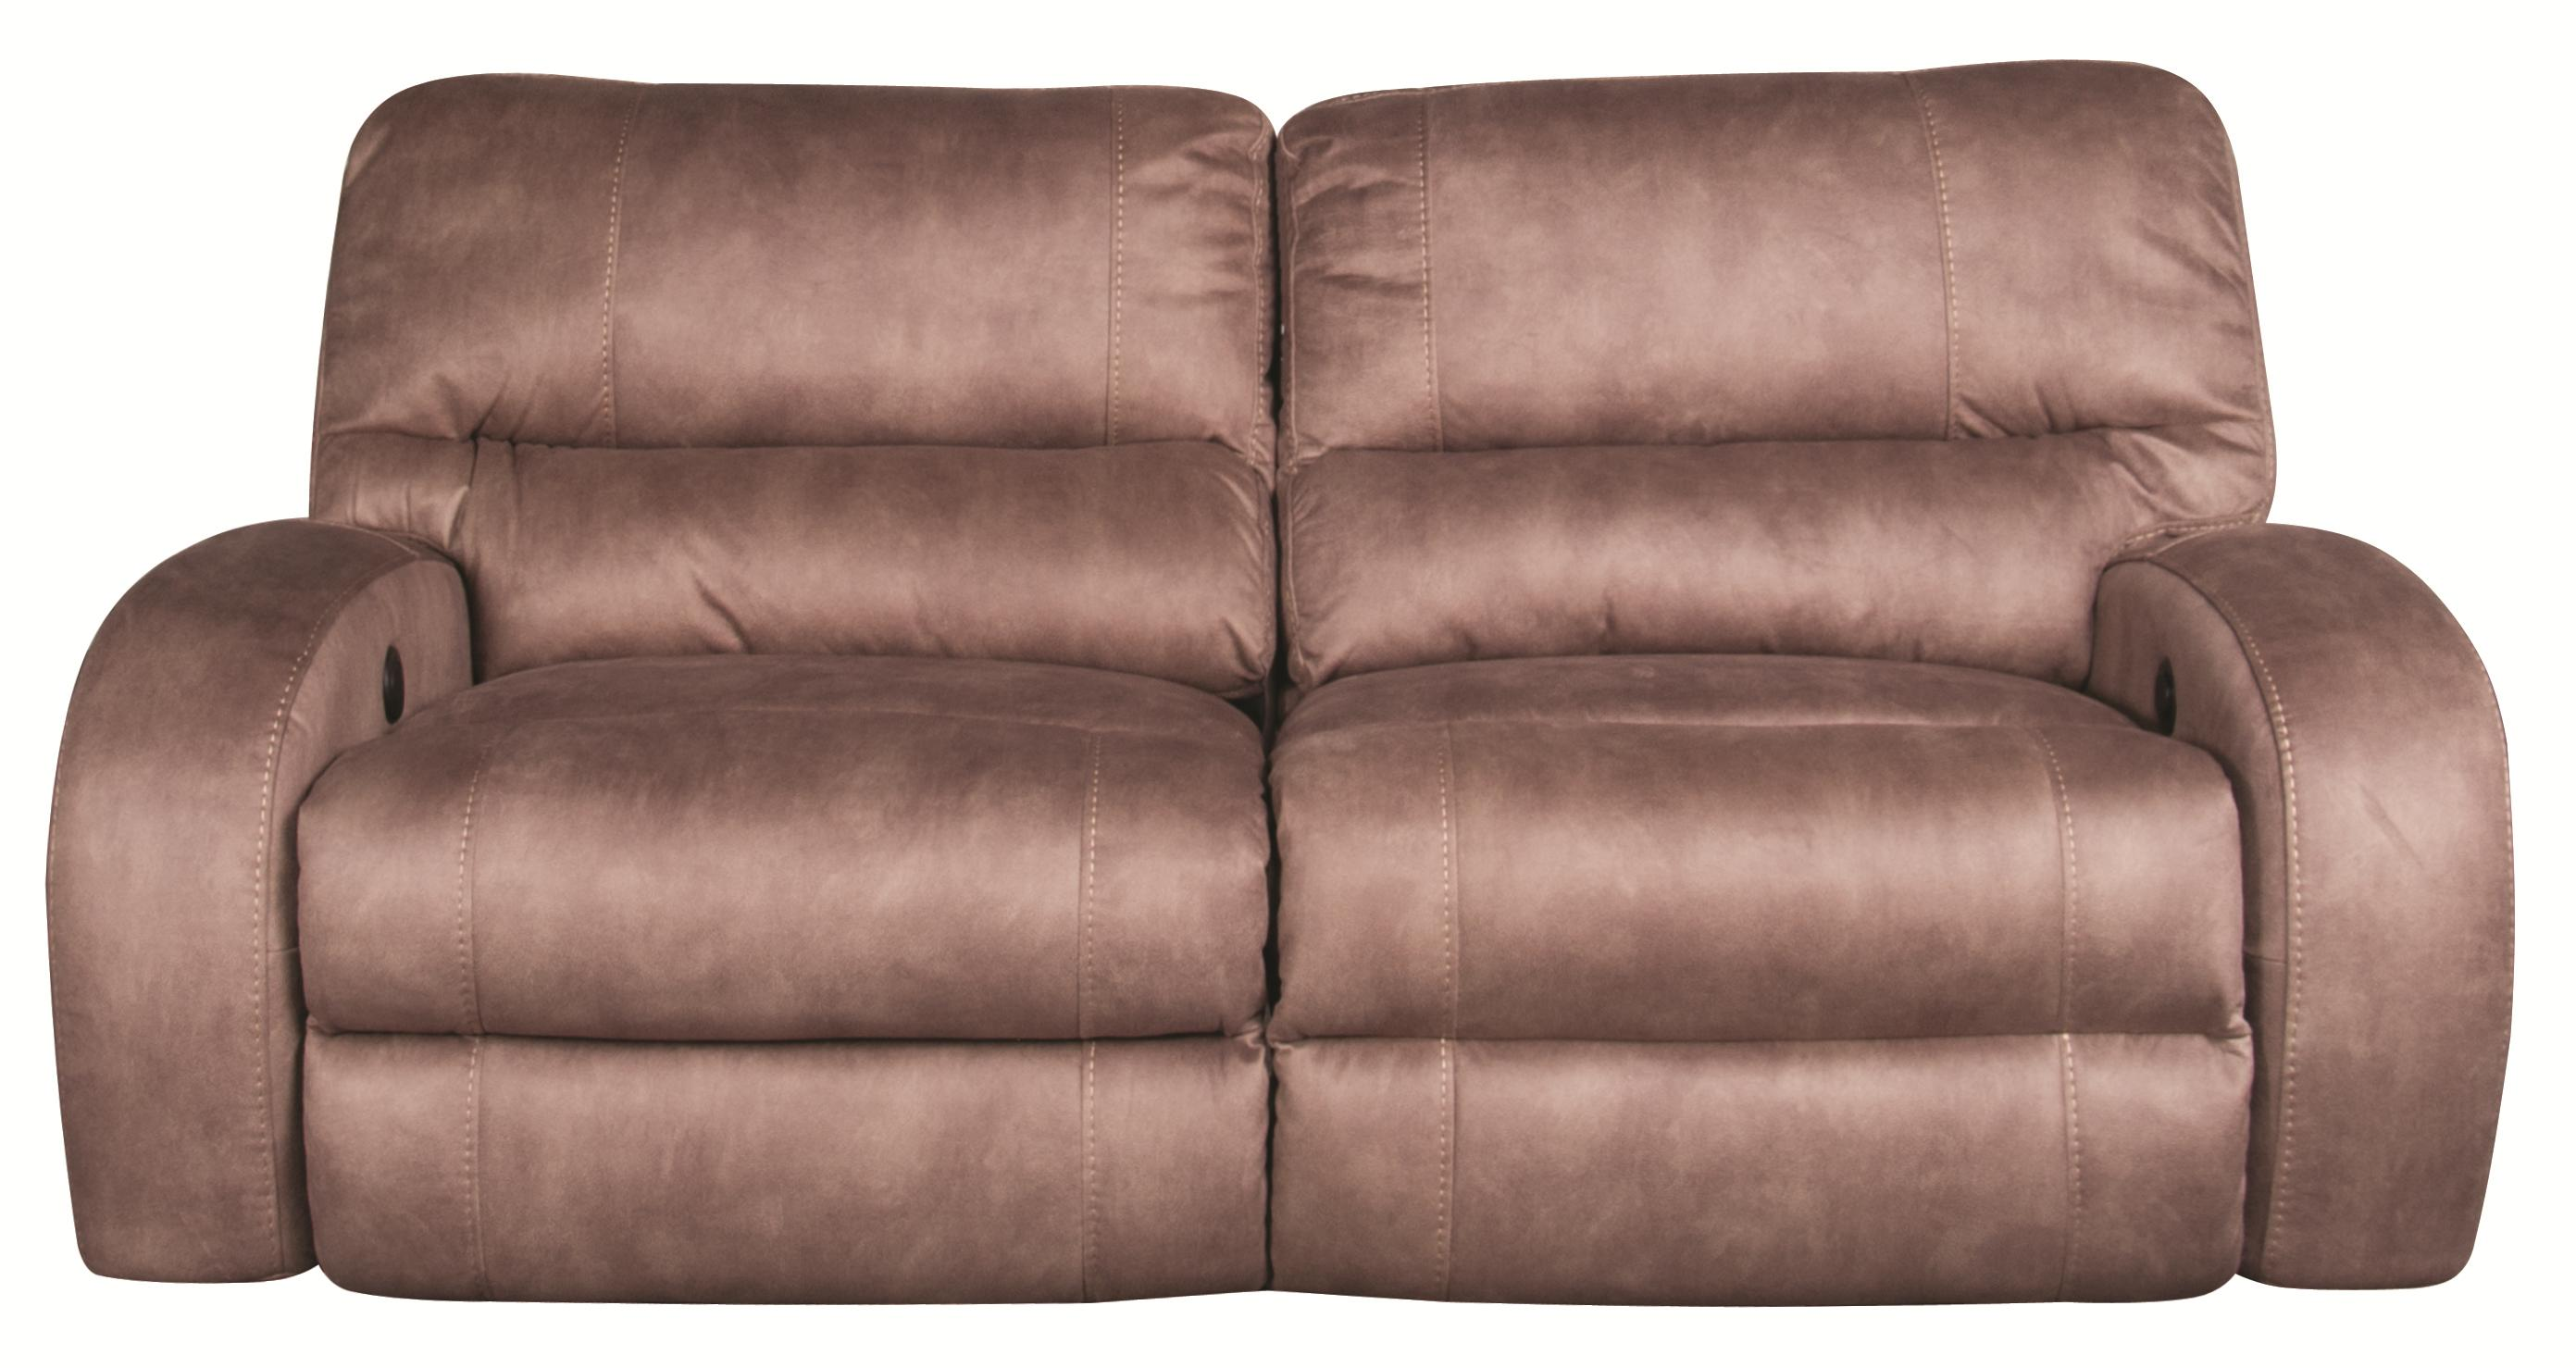 Morris Home Furnishings Caiden Caiden Power Reclining Sofa - Item Number: 102849900